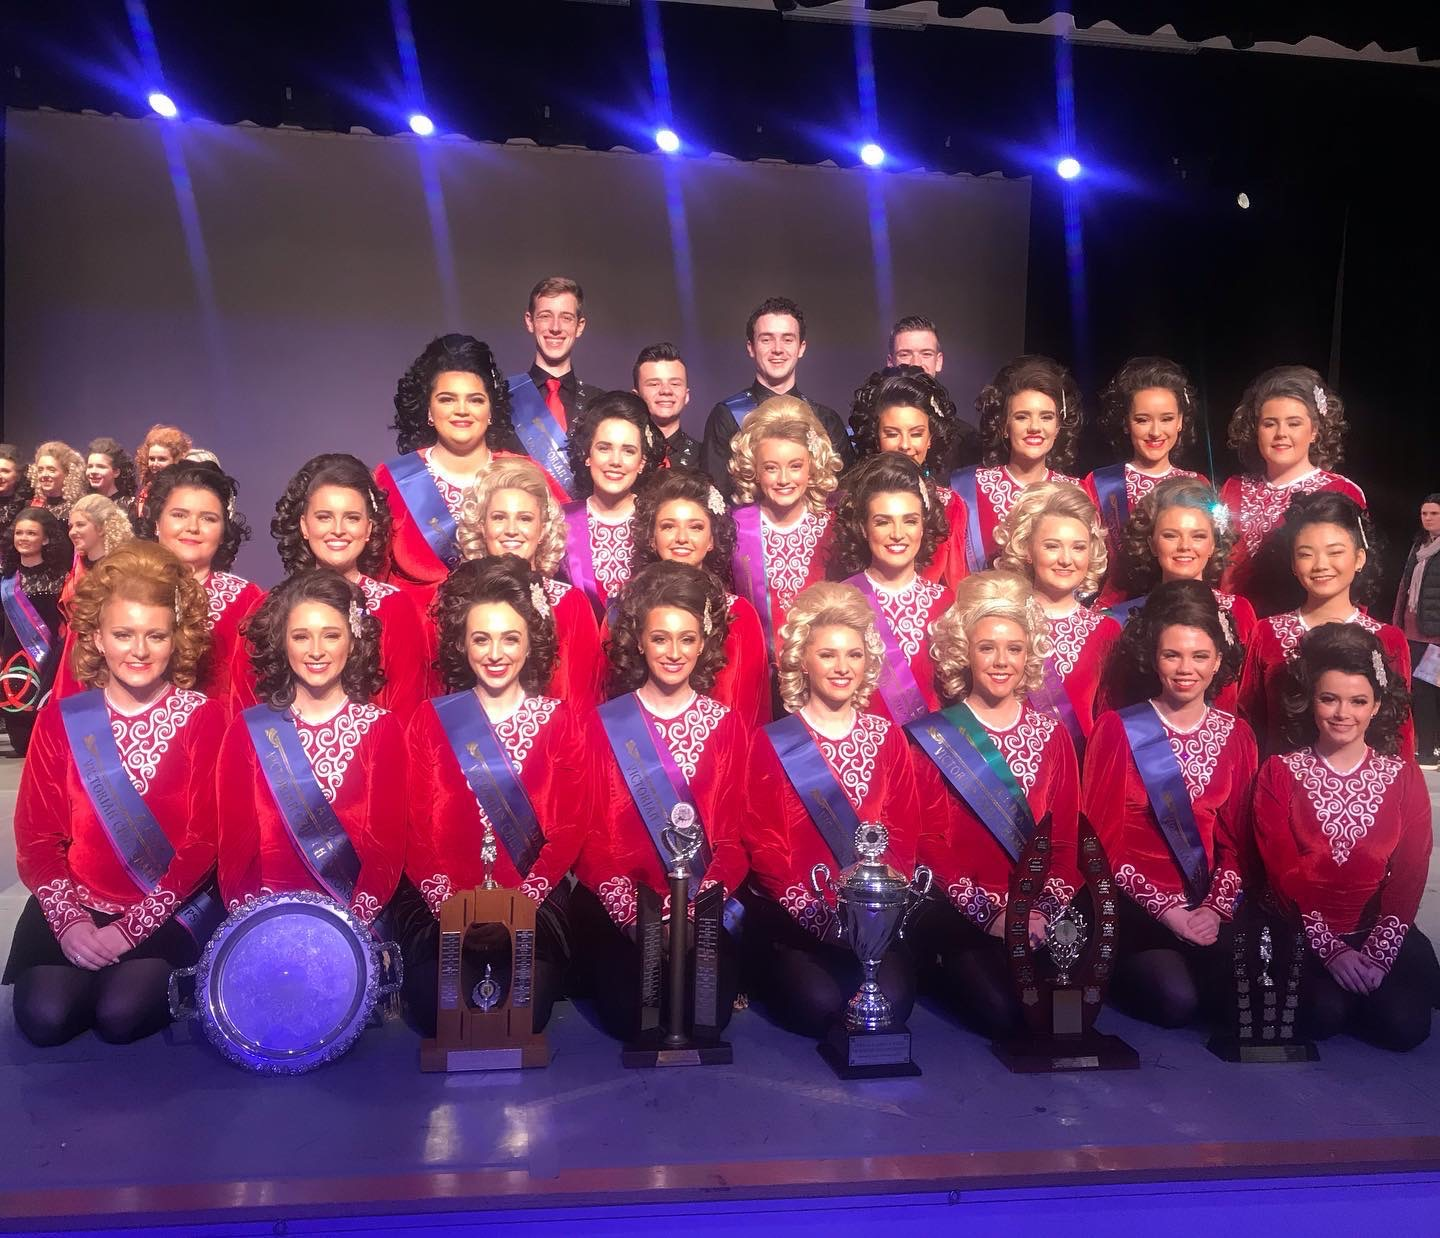 Senior Teams at the 2019 Victorian Ceili